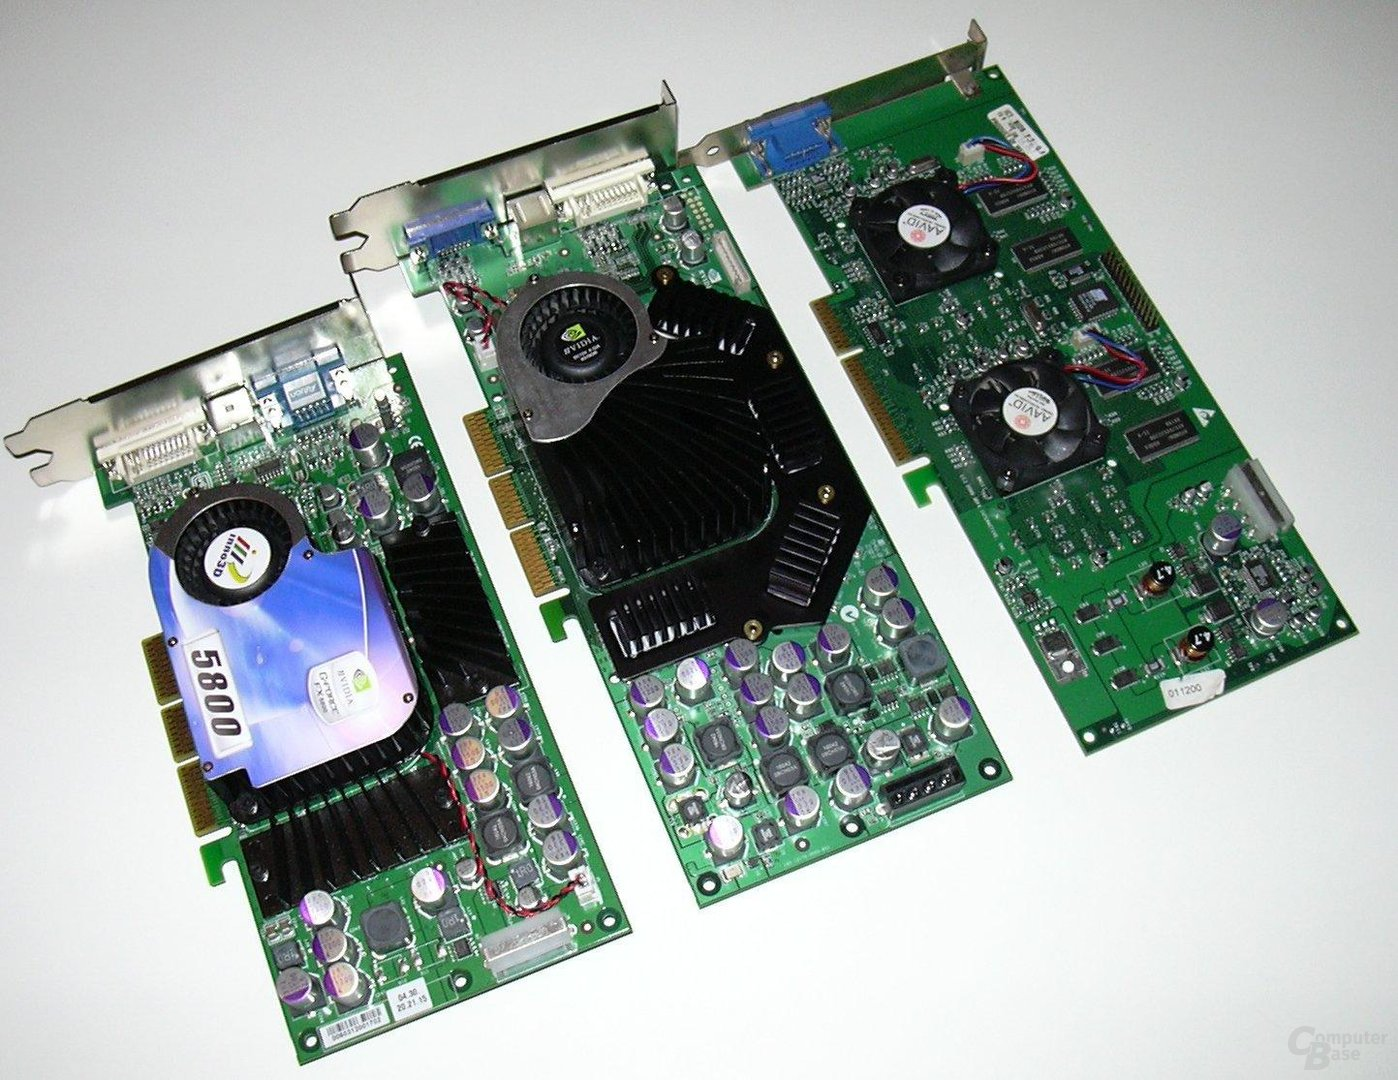 GeForce FX 5900 Ultra vs. FX 5800 vs. Voodoo 5 5500